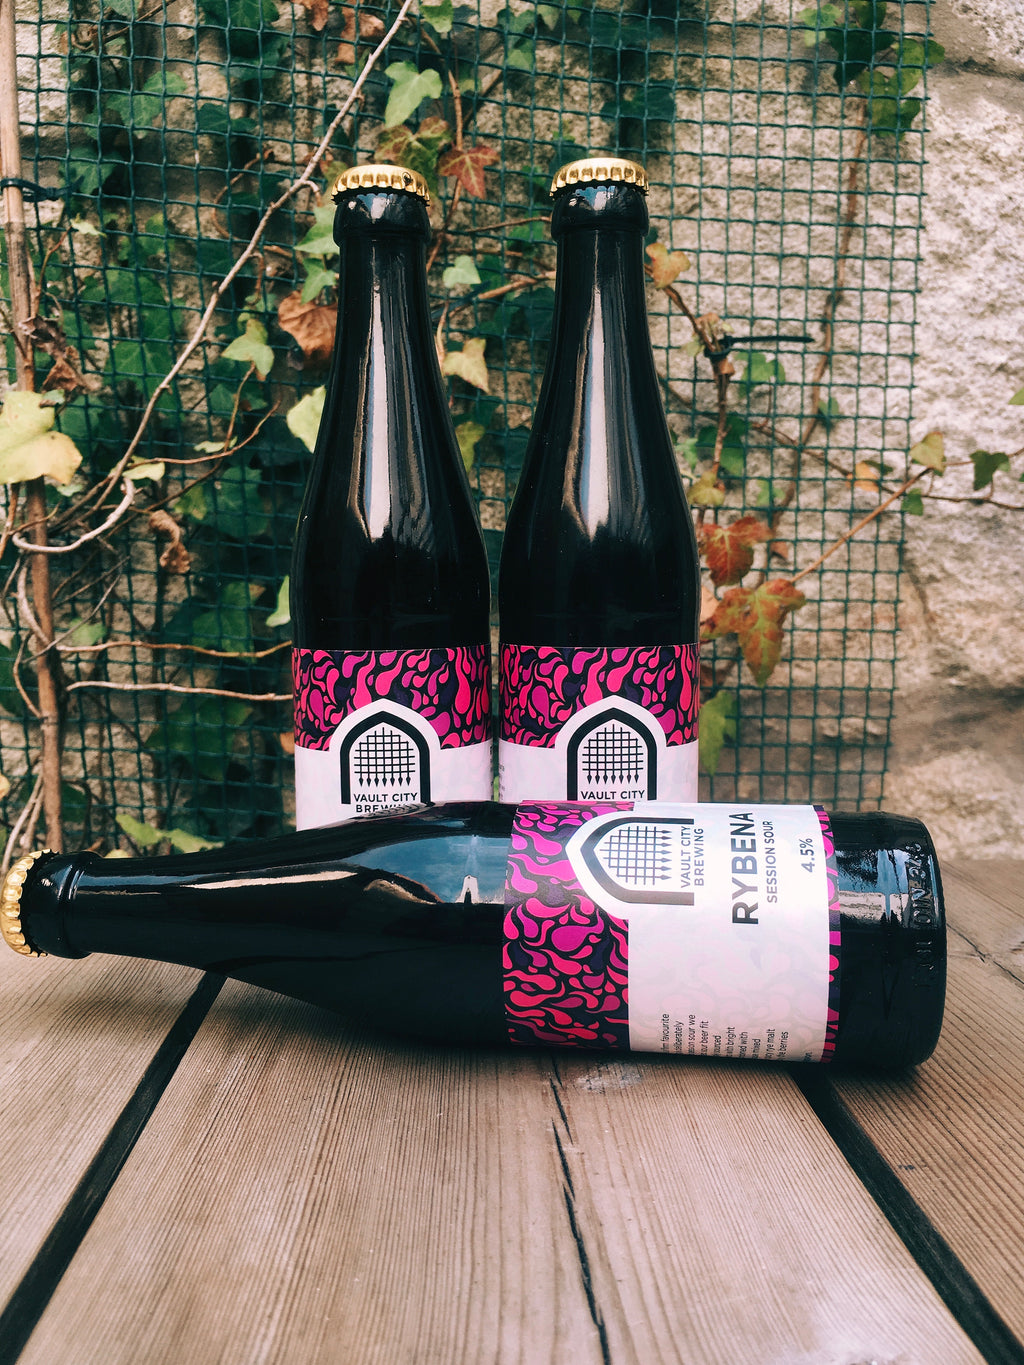 Vault City Rybena Session Sour (Fruited Sour) - Armazém da Cerveja